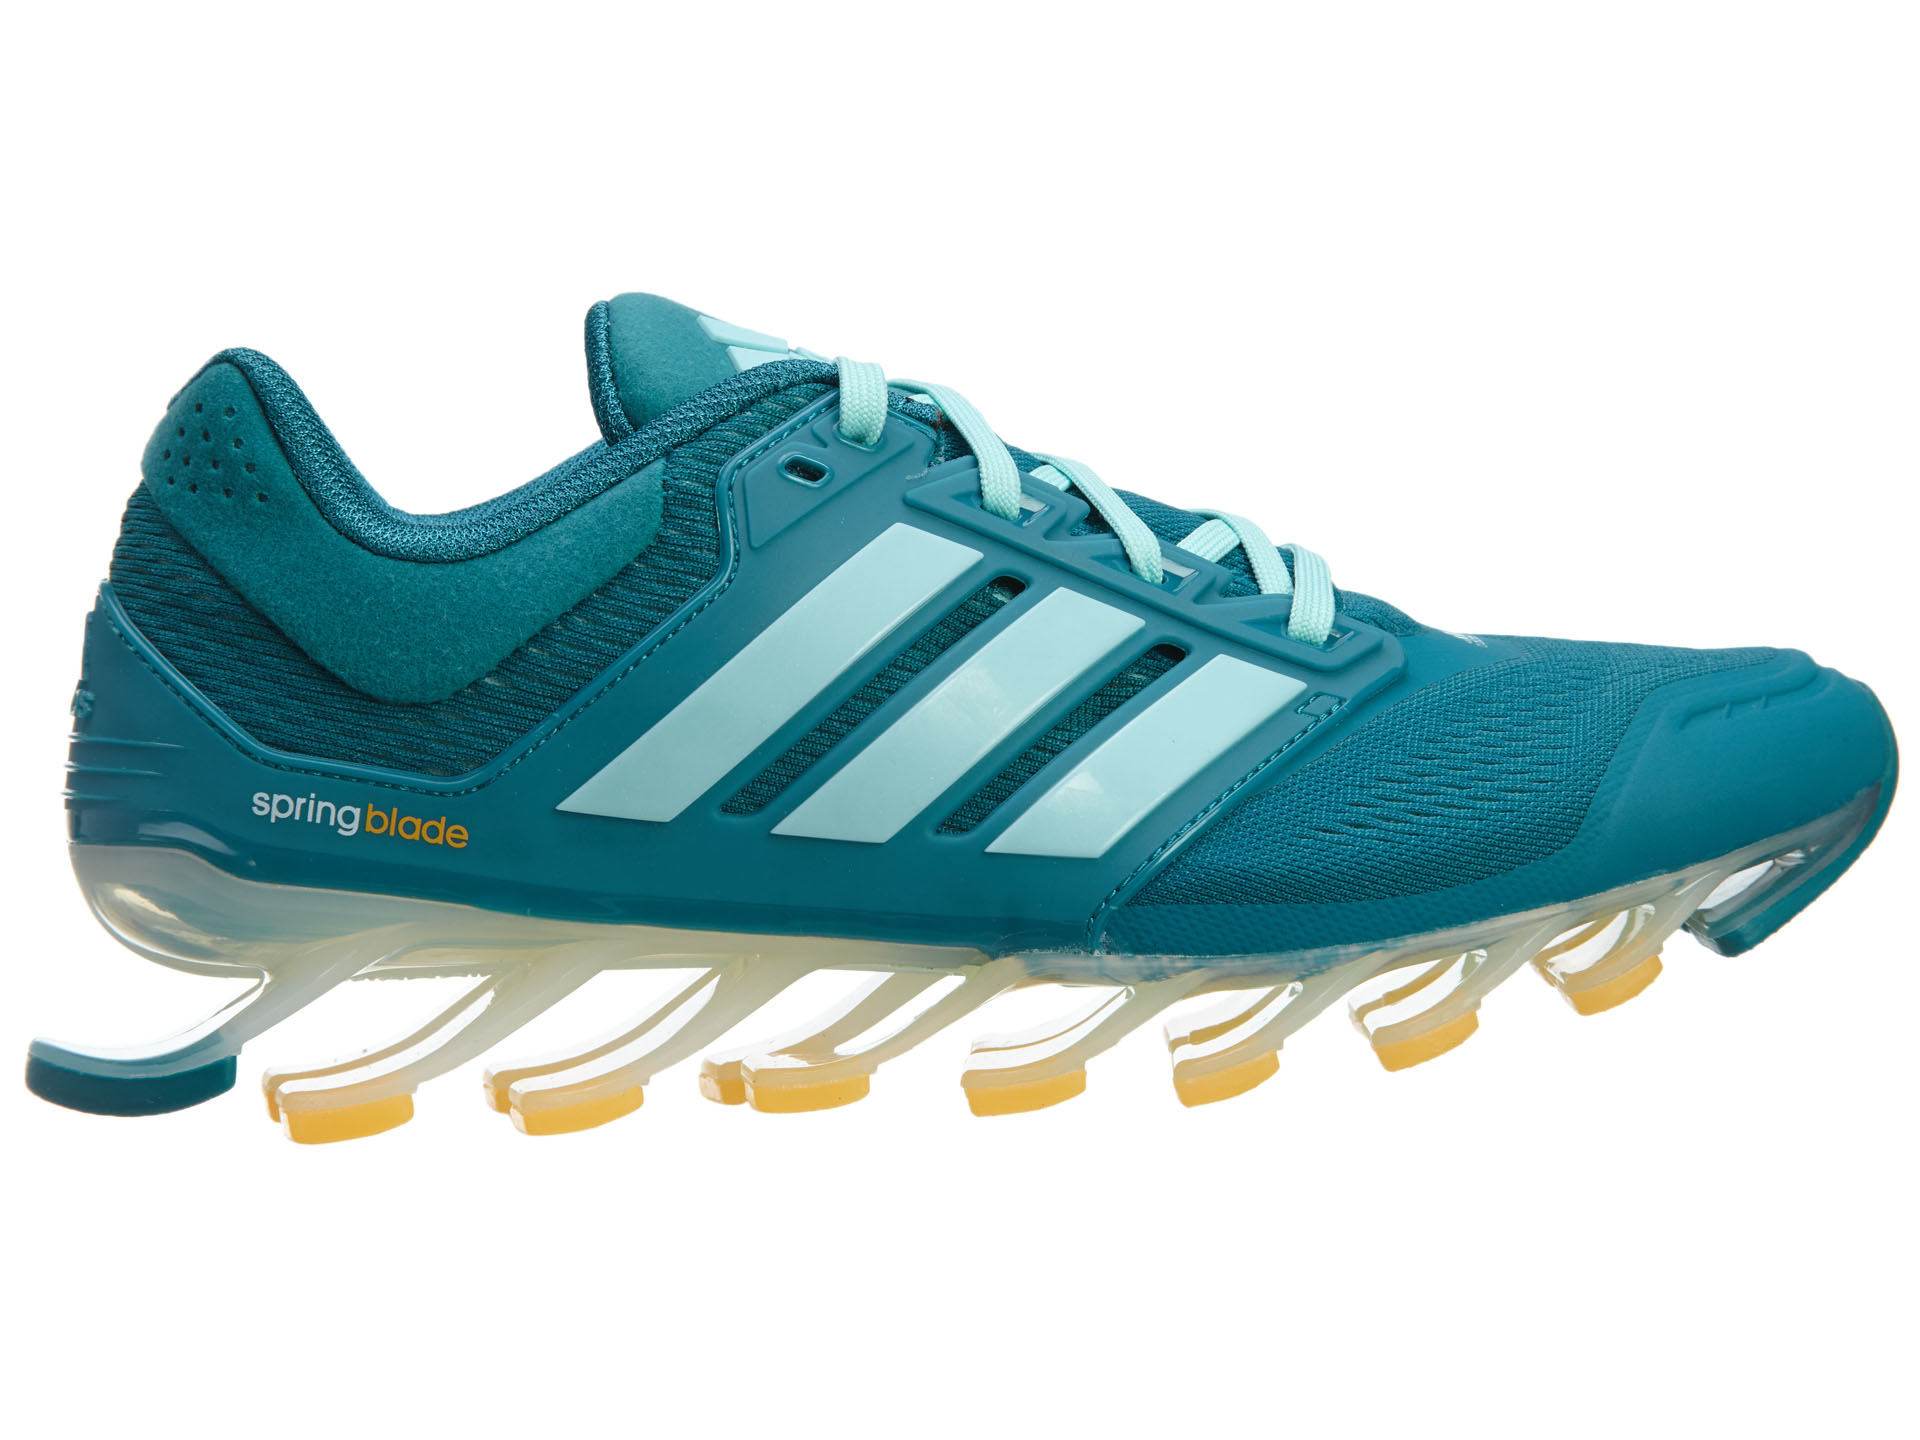 ... czech adidas springblade drive power teal frost mint sol gold w 7a384  97fb0 eeff86ad3156